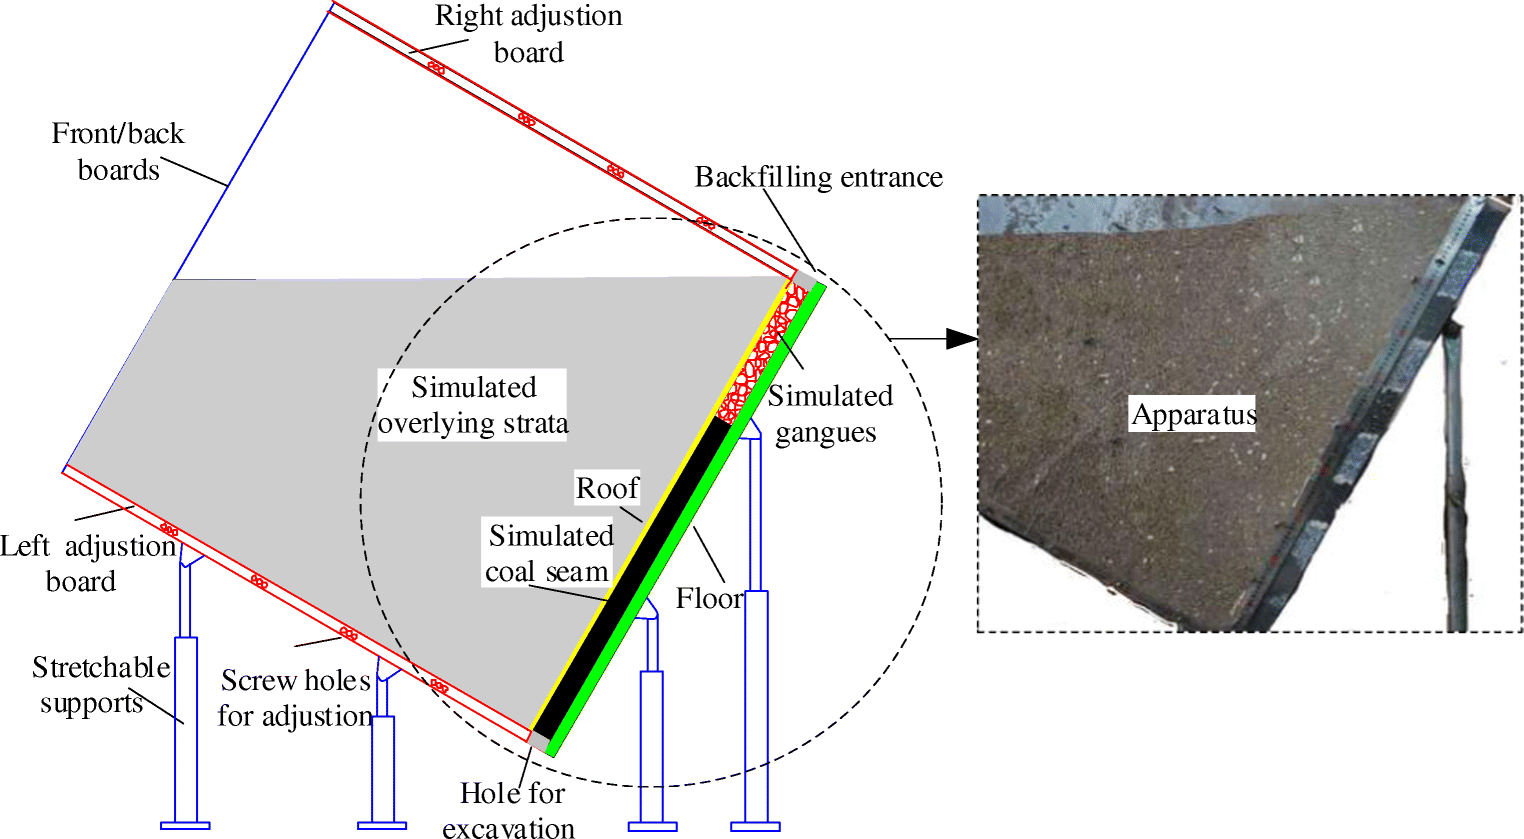 Experimental study of the movement of backfilling gangues for goaf